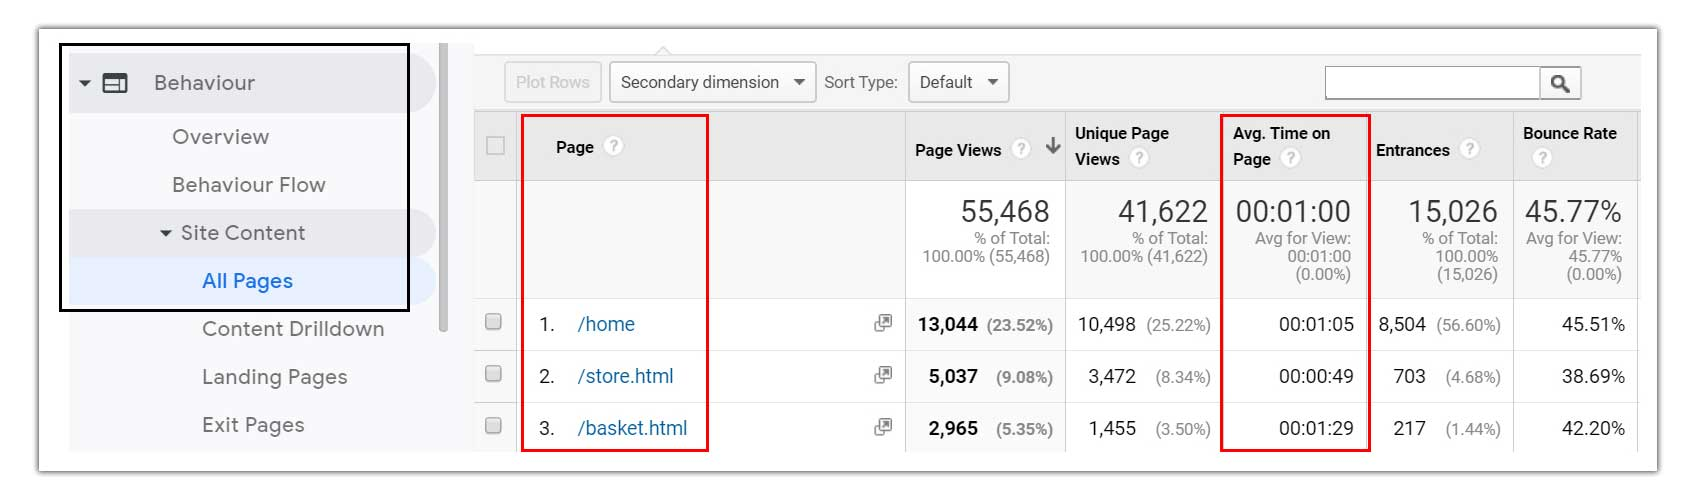 Time-on-Page-Page-Wise-Data on Google Analytics